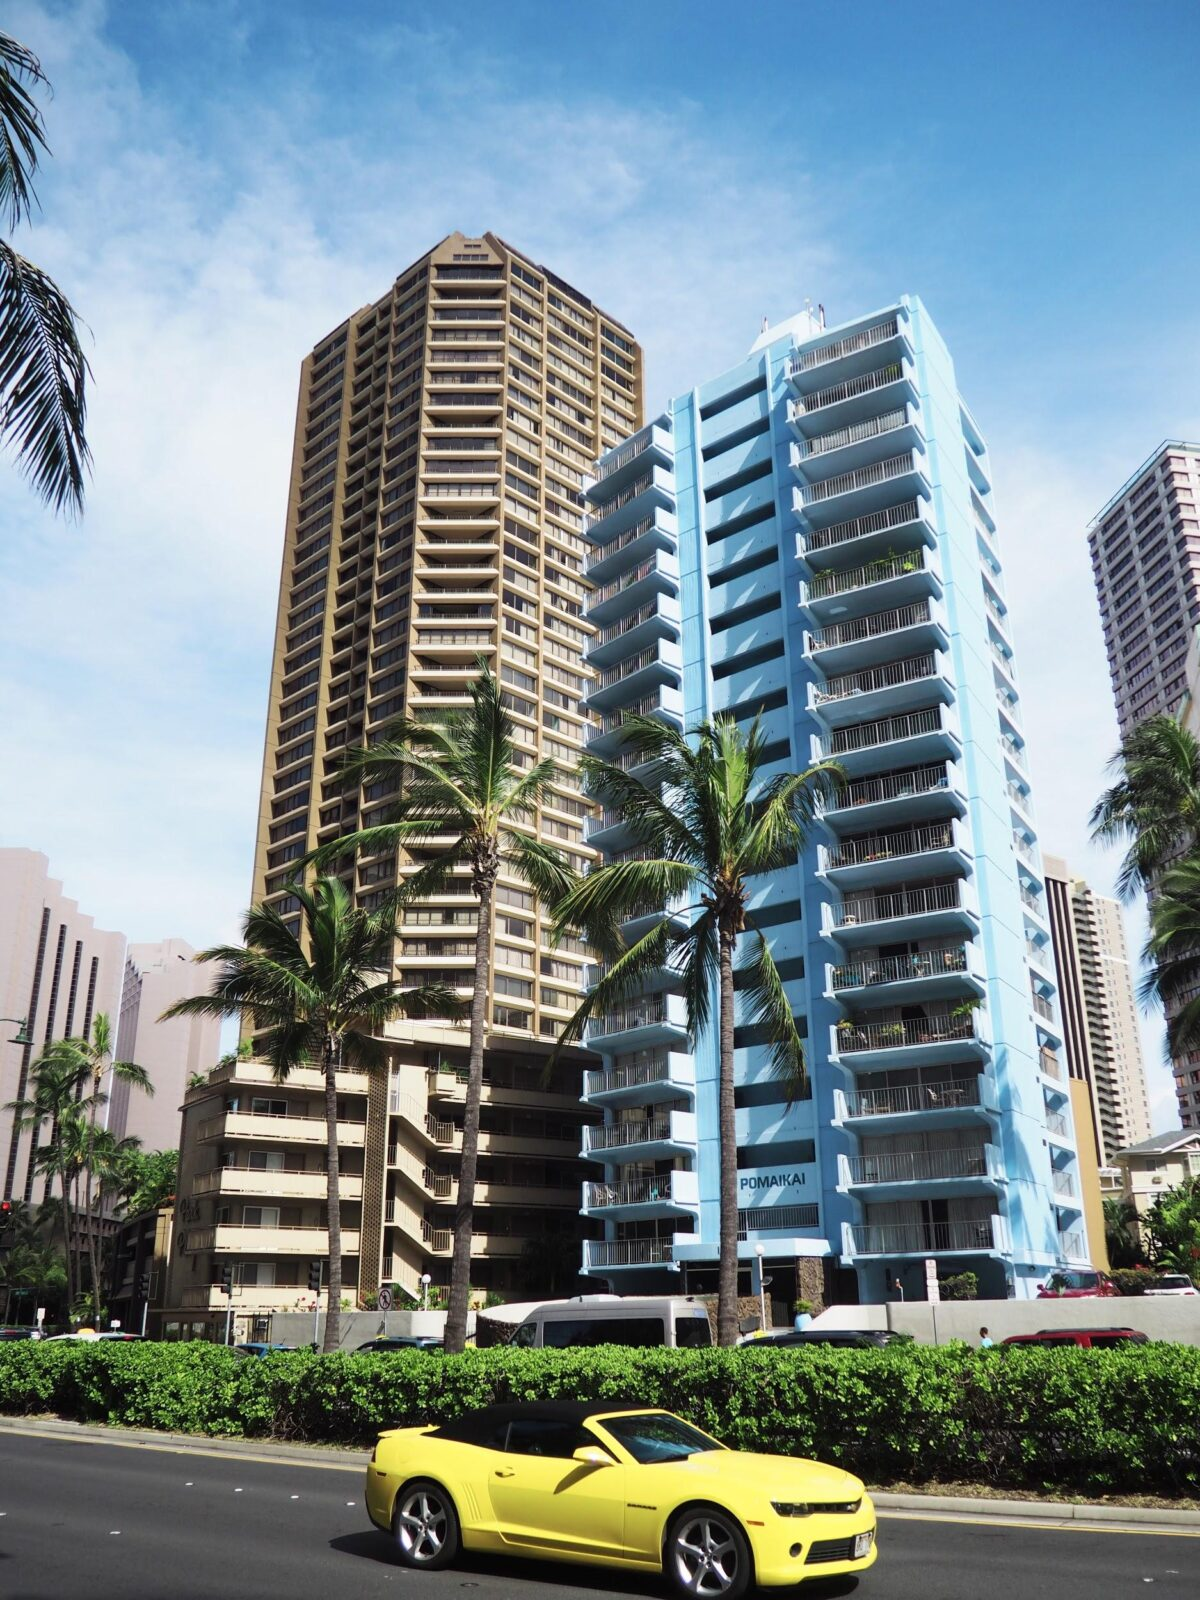 Most Expensive Condos In The World